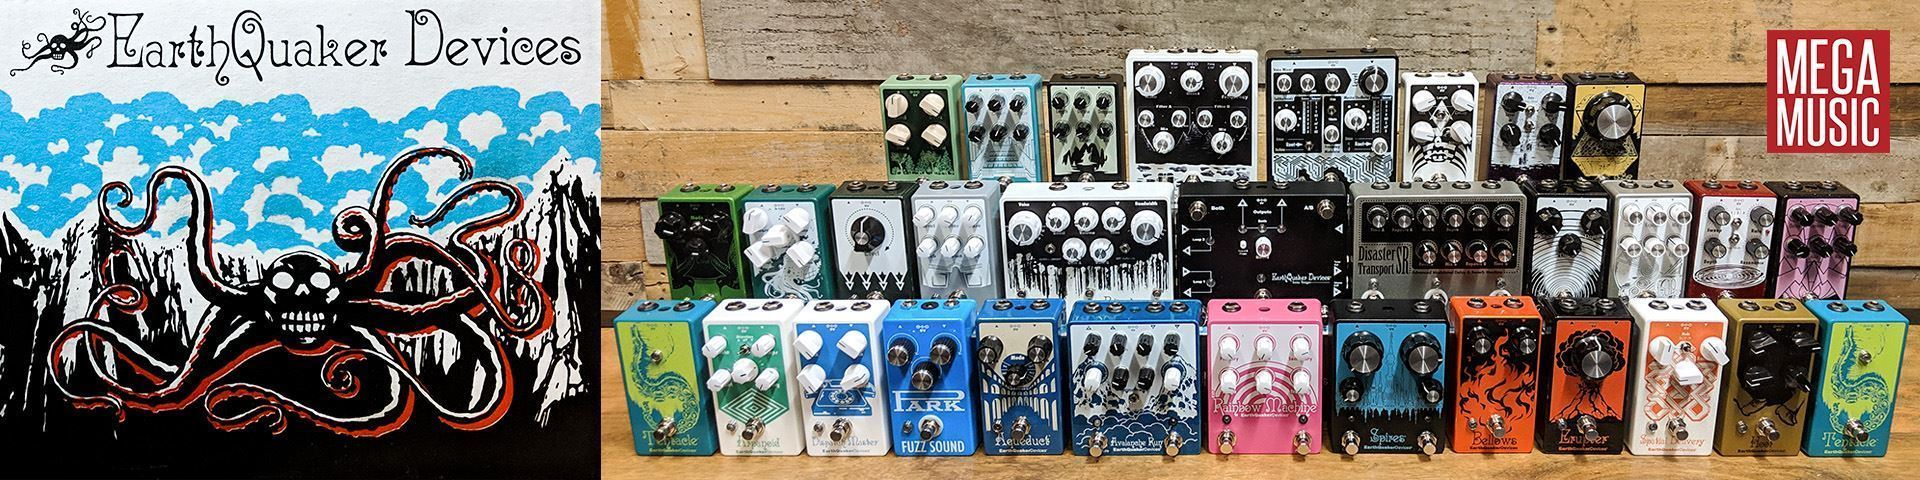 EarthQuaker Devices Effects Pedals Now Available at Mega Music